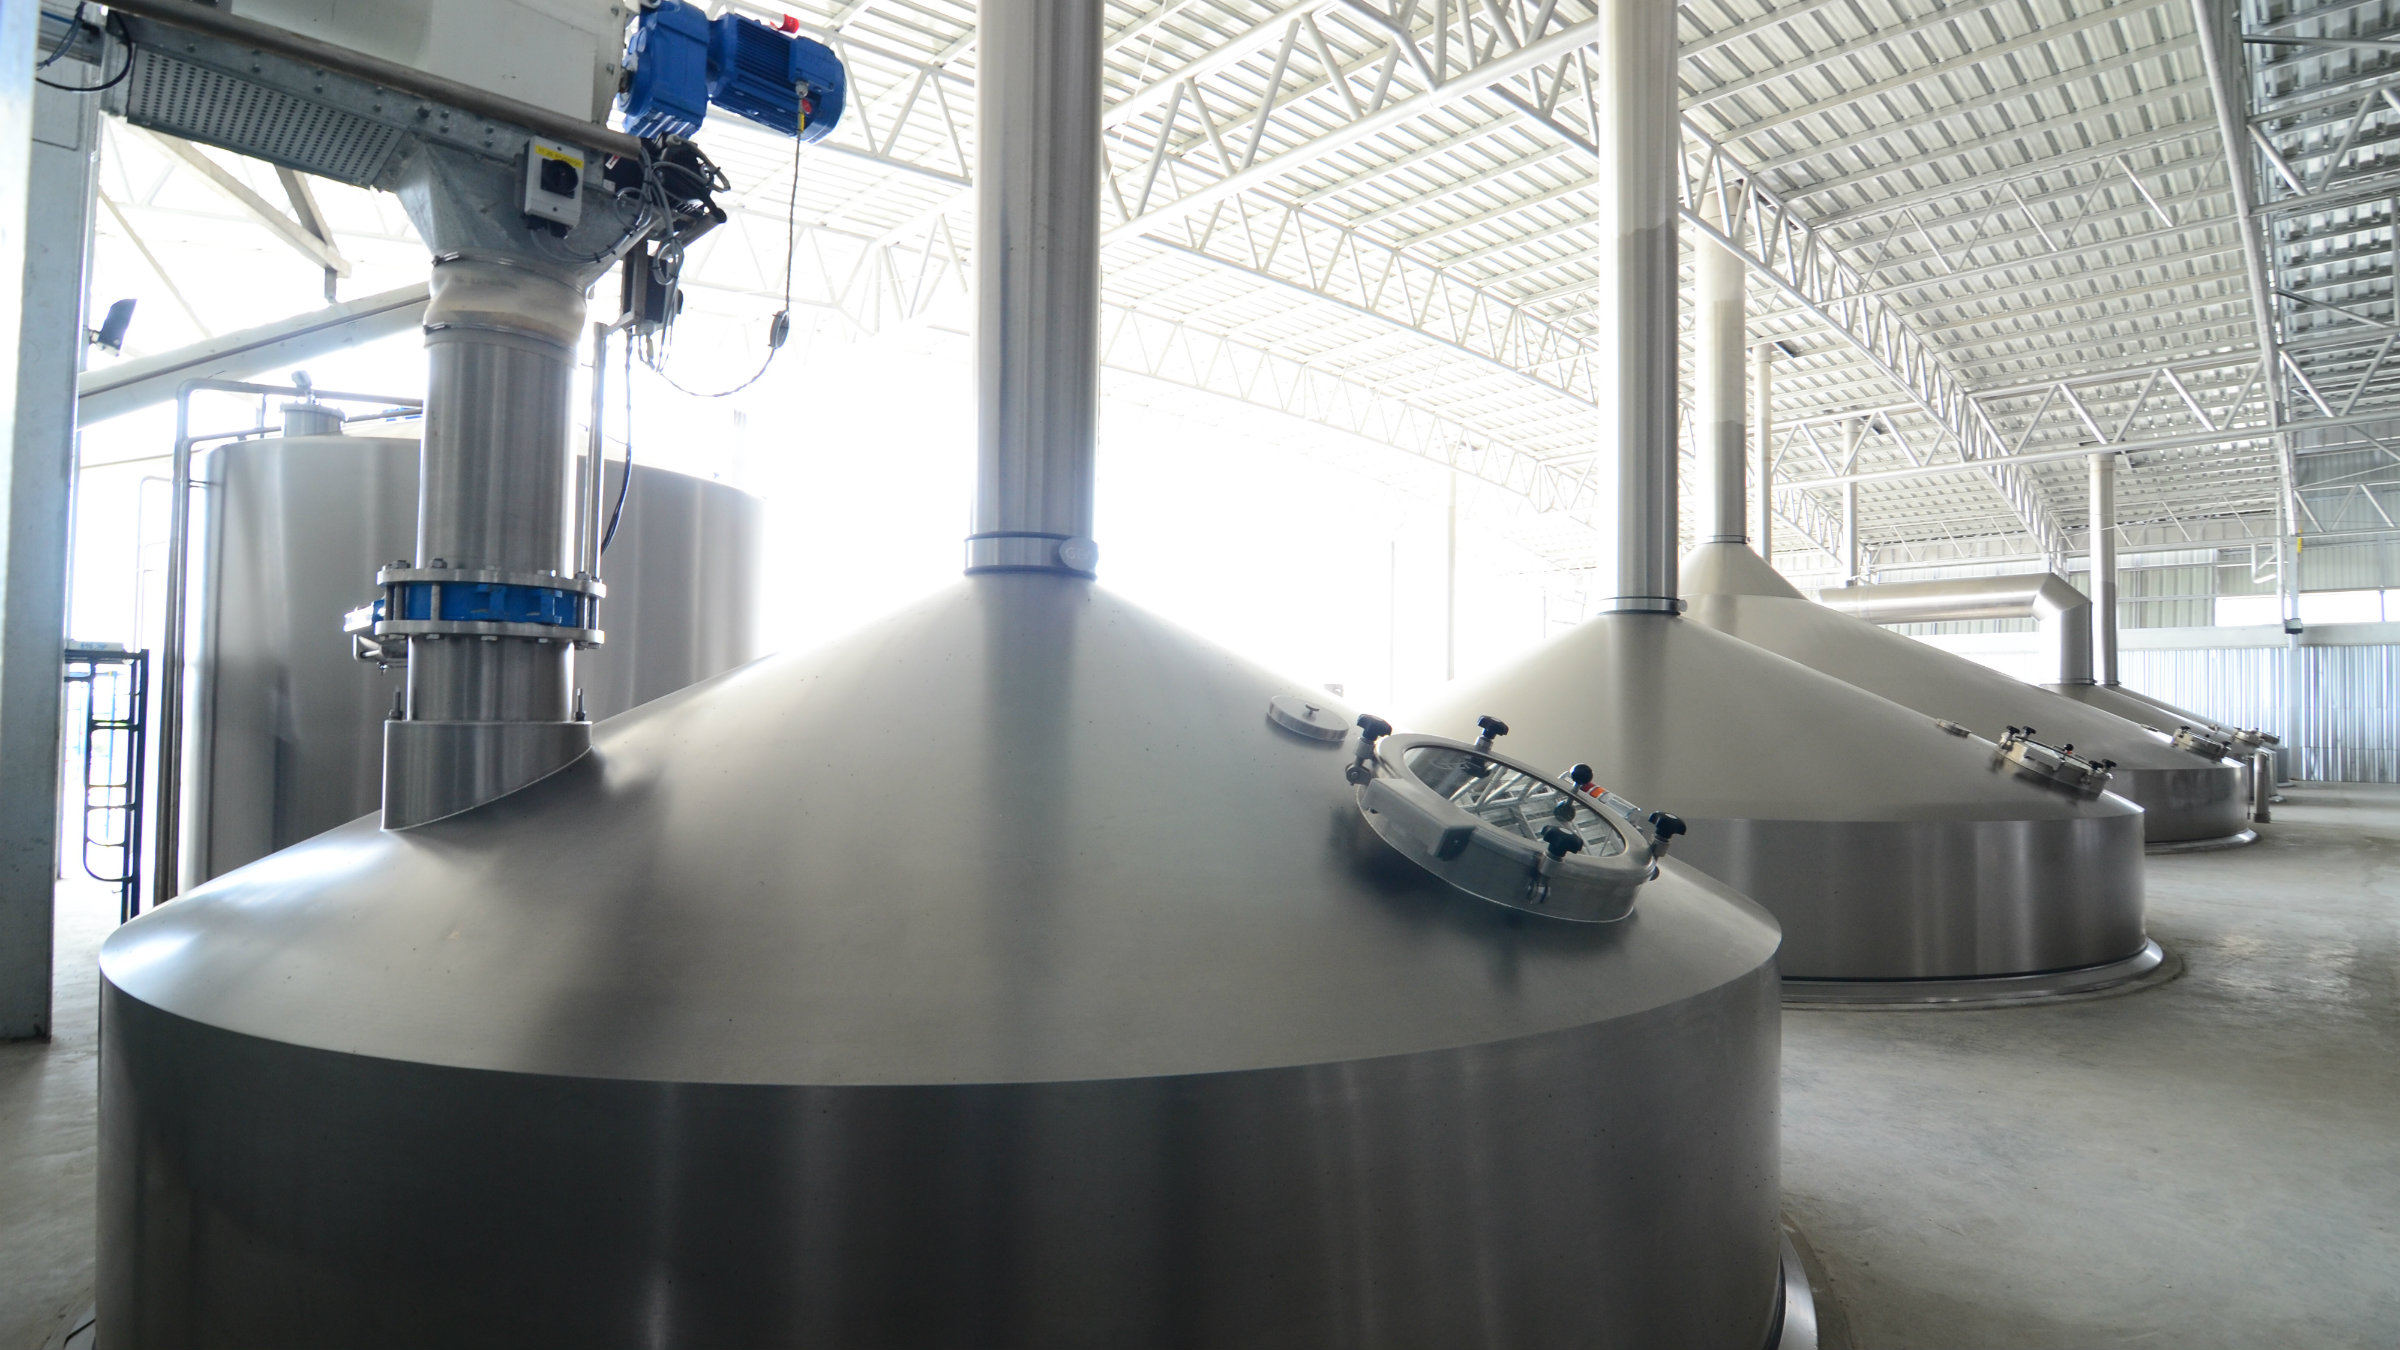 Brewhouse at Boon Rawd Brewery, Banglen, Thailand, featuring 13 meter wide lauter tun from GEA which casts 1,500 hl with each brew.